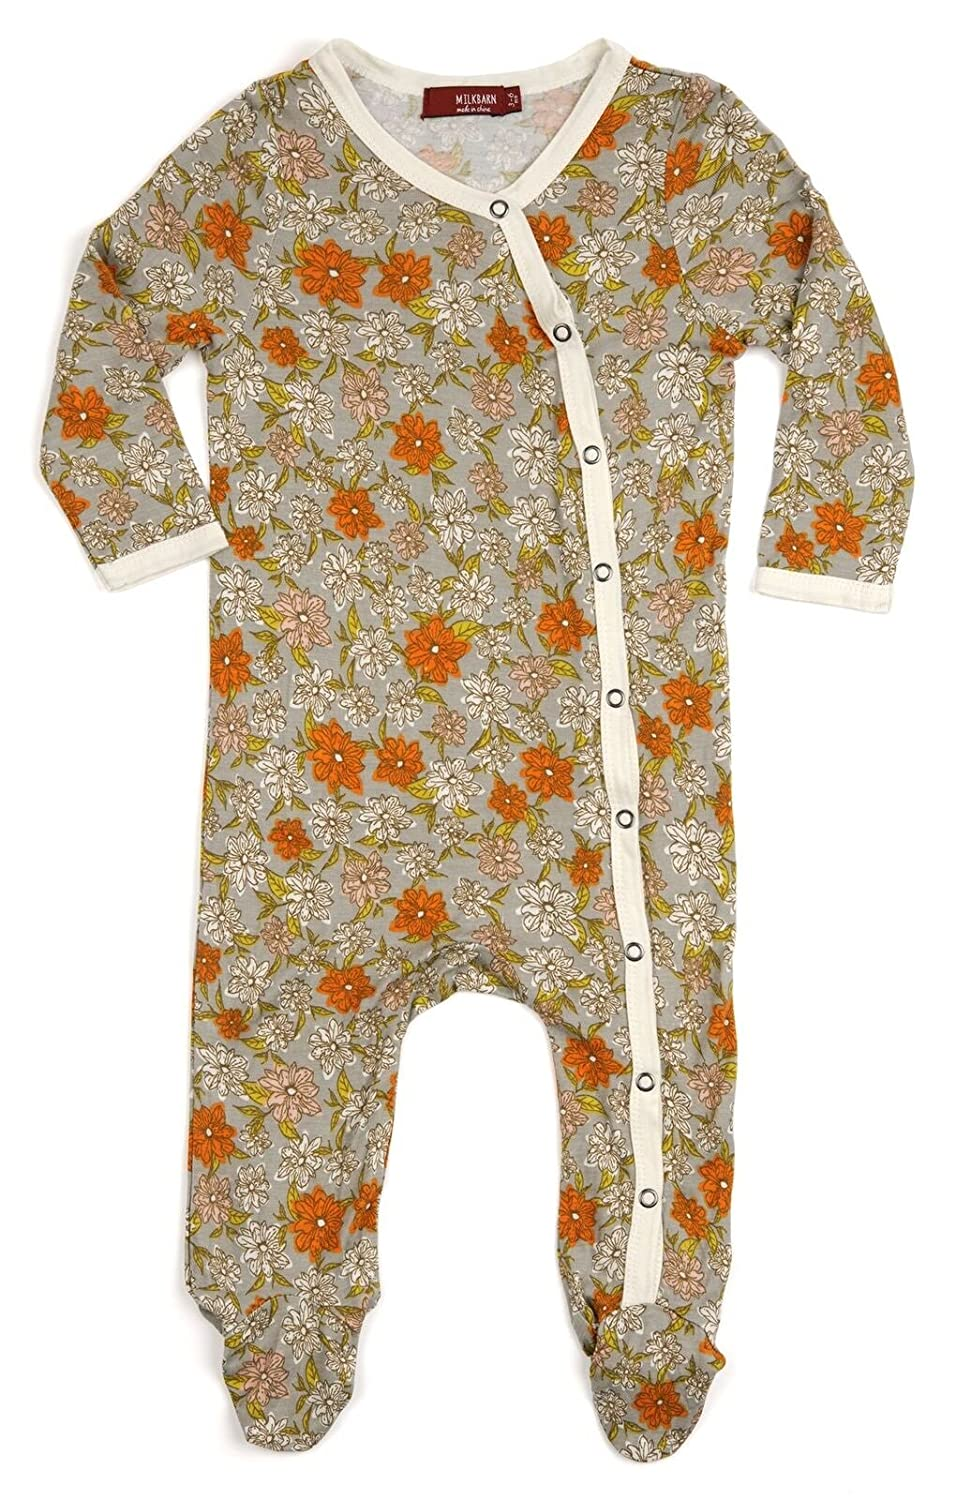 3-6 Months MilkBarn Bamboo Footed Romper Grey Floral